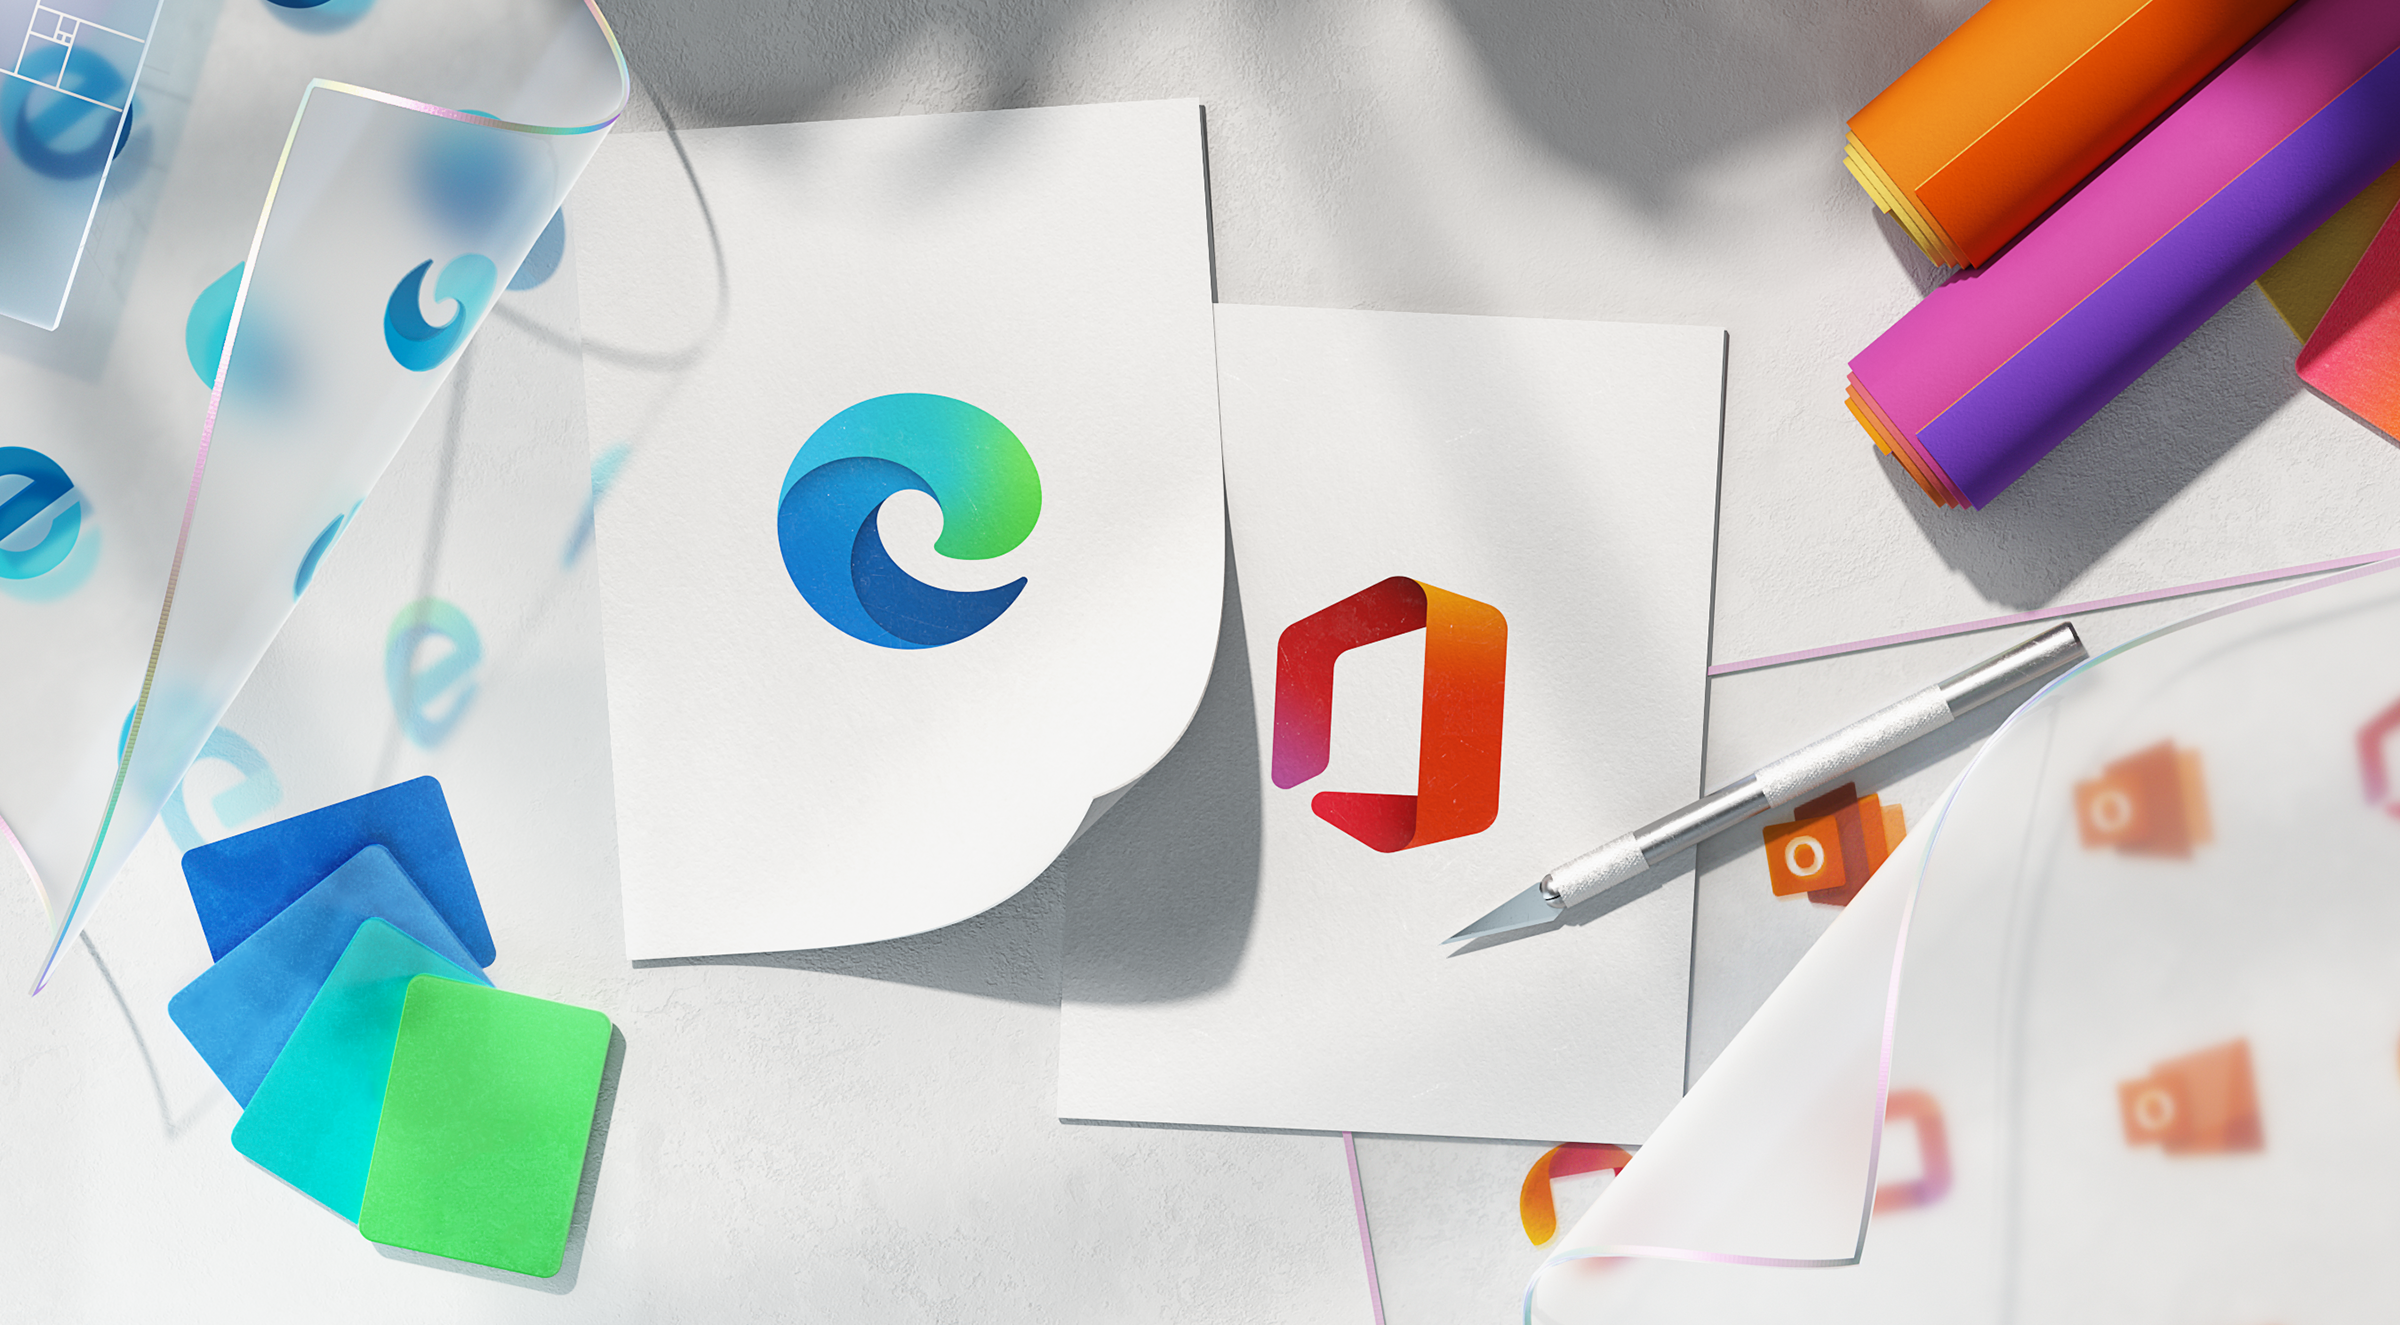 Microsoft redesigns its icons, A designer's desktop covered with icon materials and drawings.